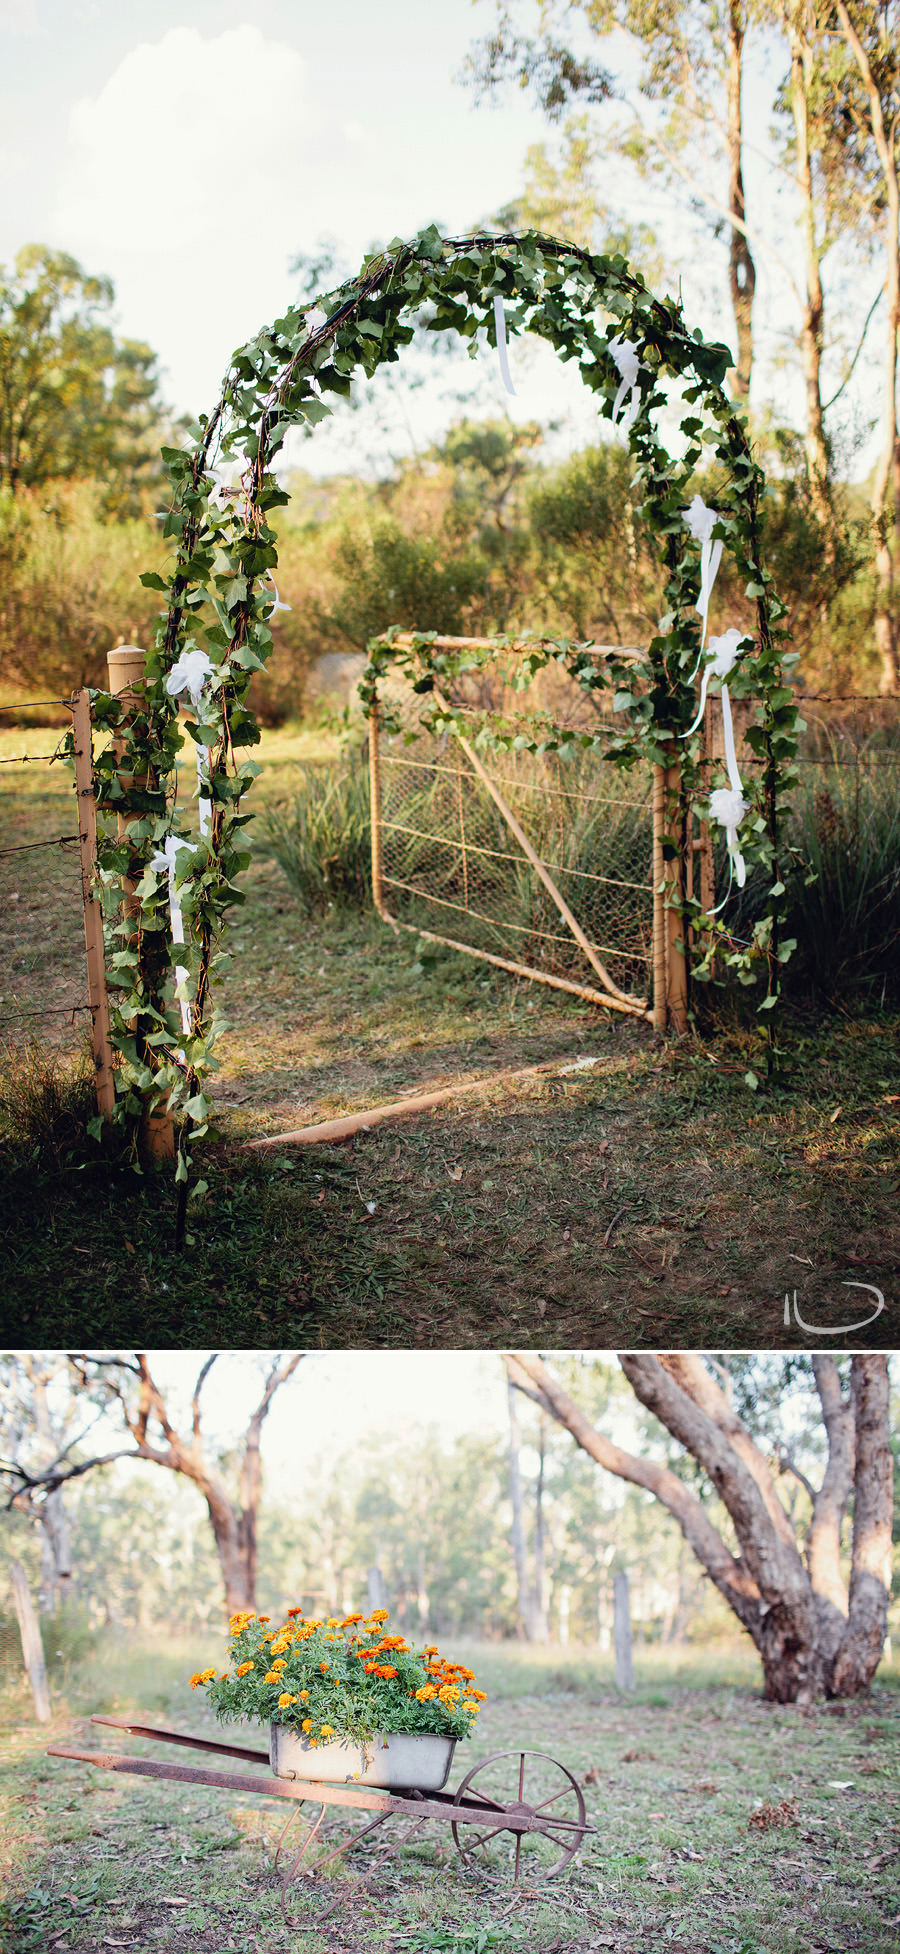 Glen Alice Wedding Photographer: Ivy covered gate